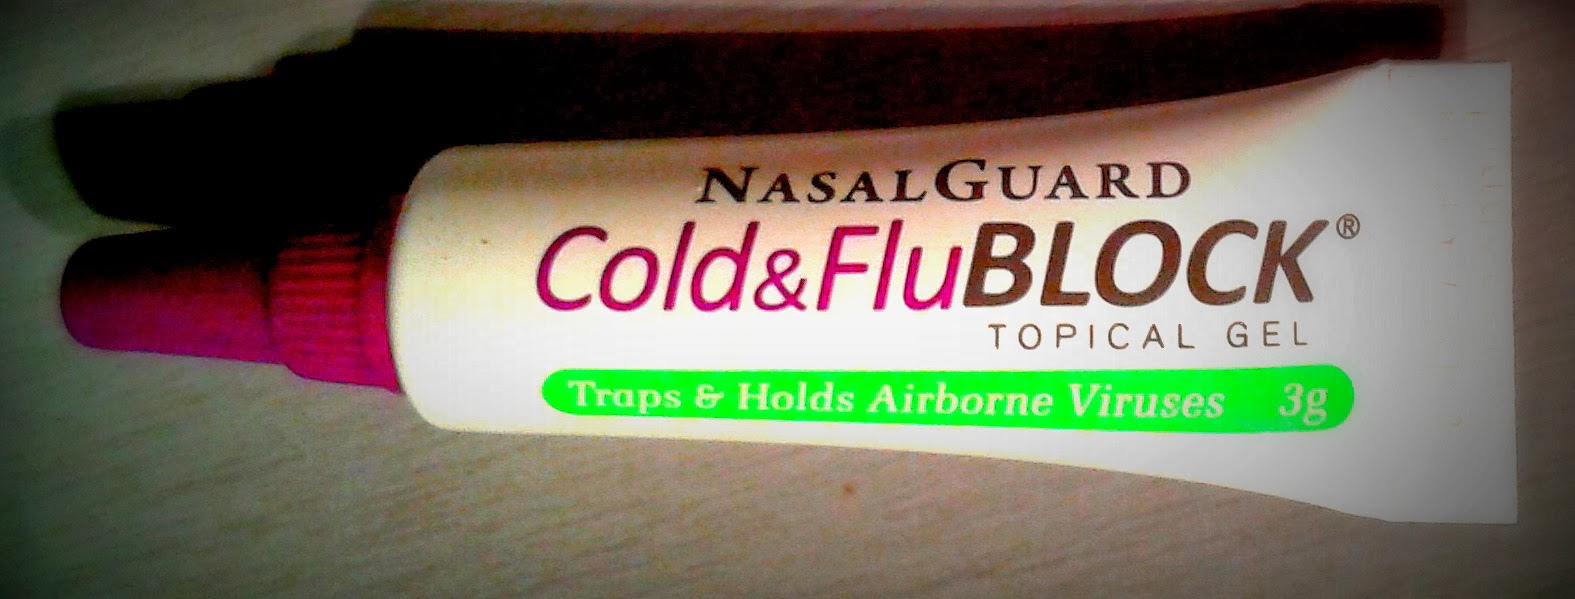 Nasalguard Cold&FluBlock, Cure for flu, Cure for Colds